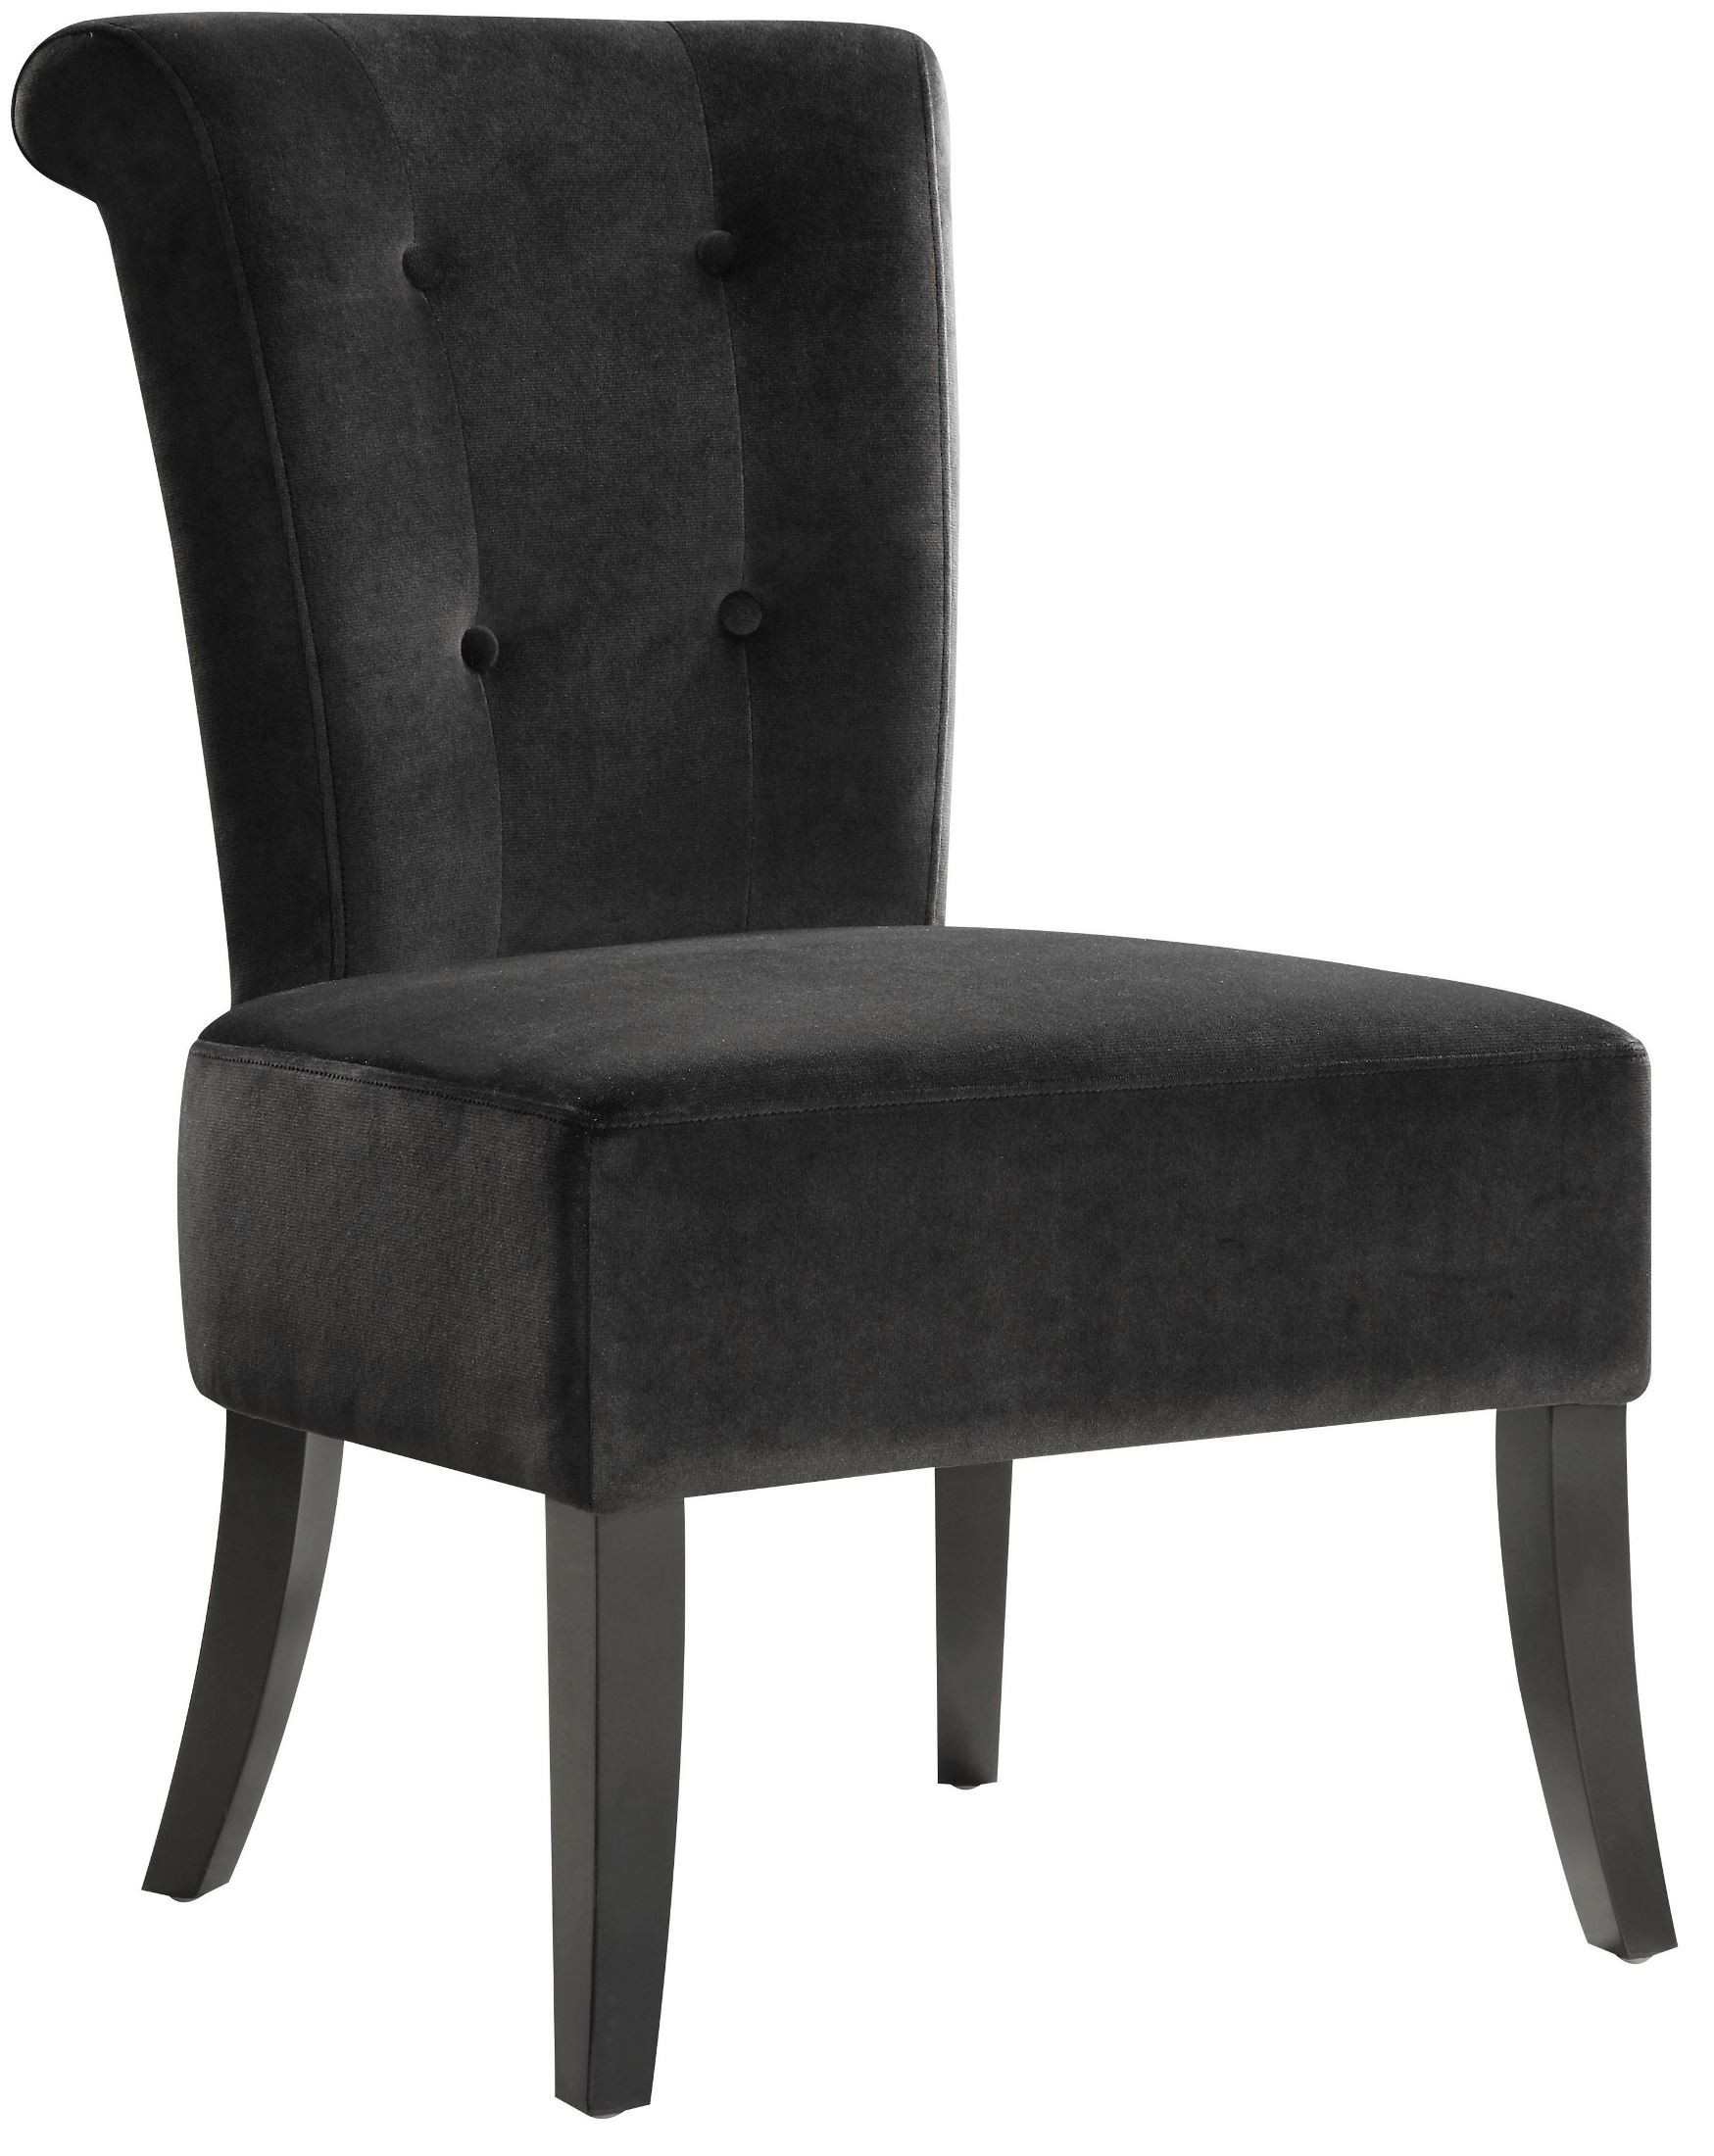 Carolina coal dining chair from pulaski ds 2508 900 409 for Carolina furniture